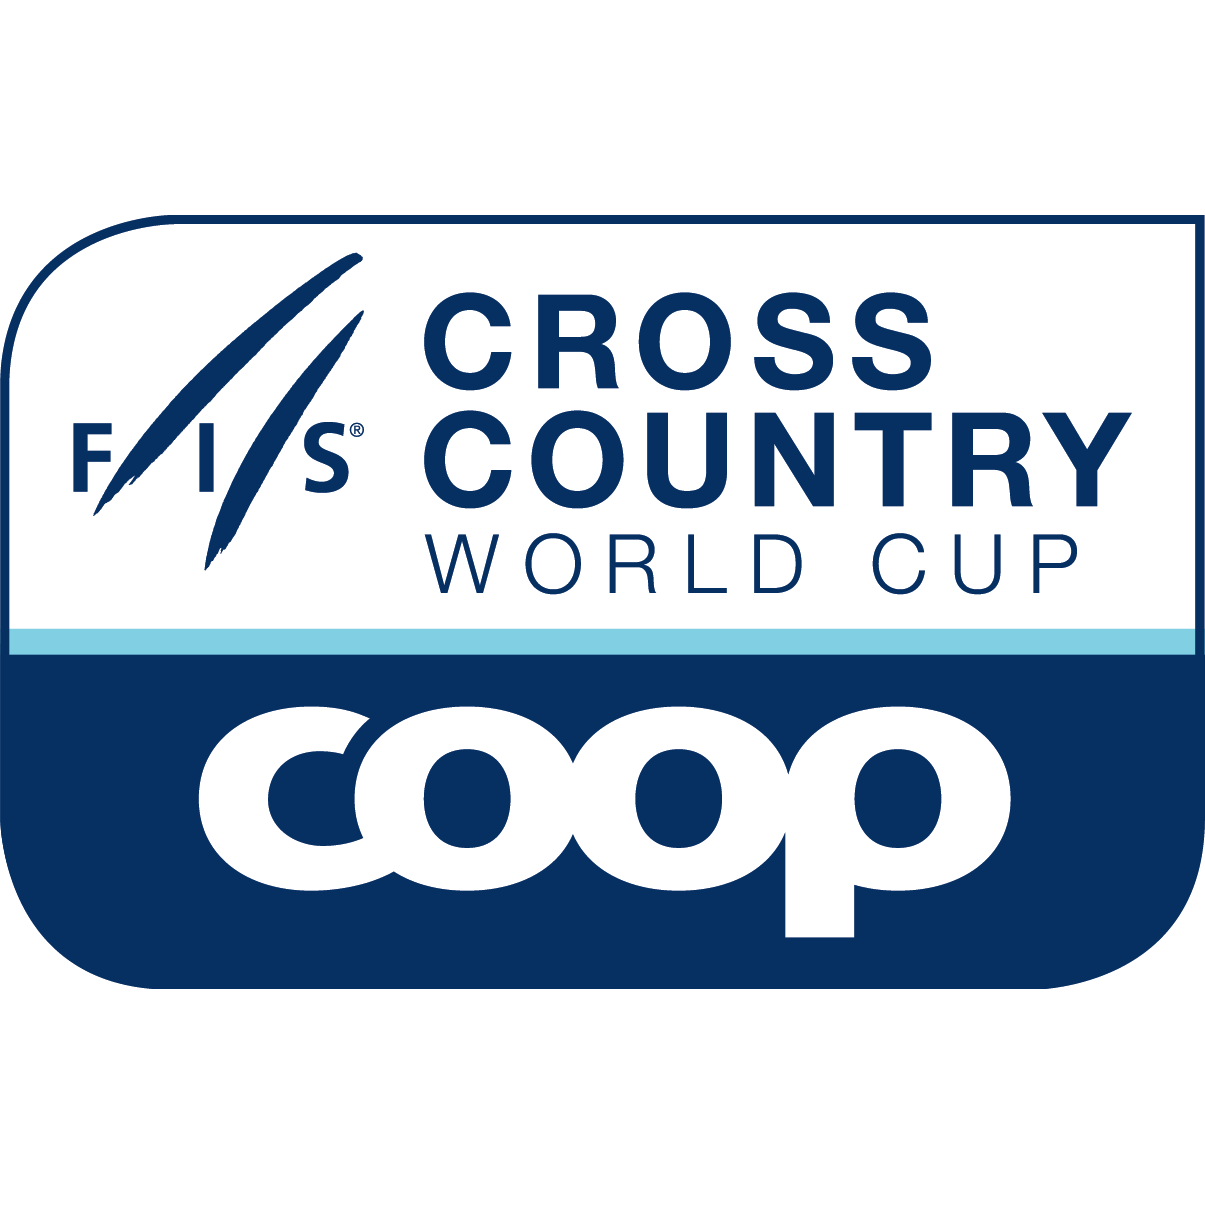 2013 FIS Cross Country World Cup